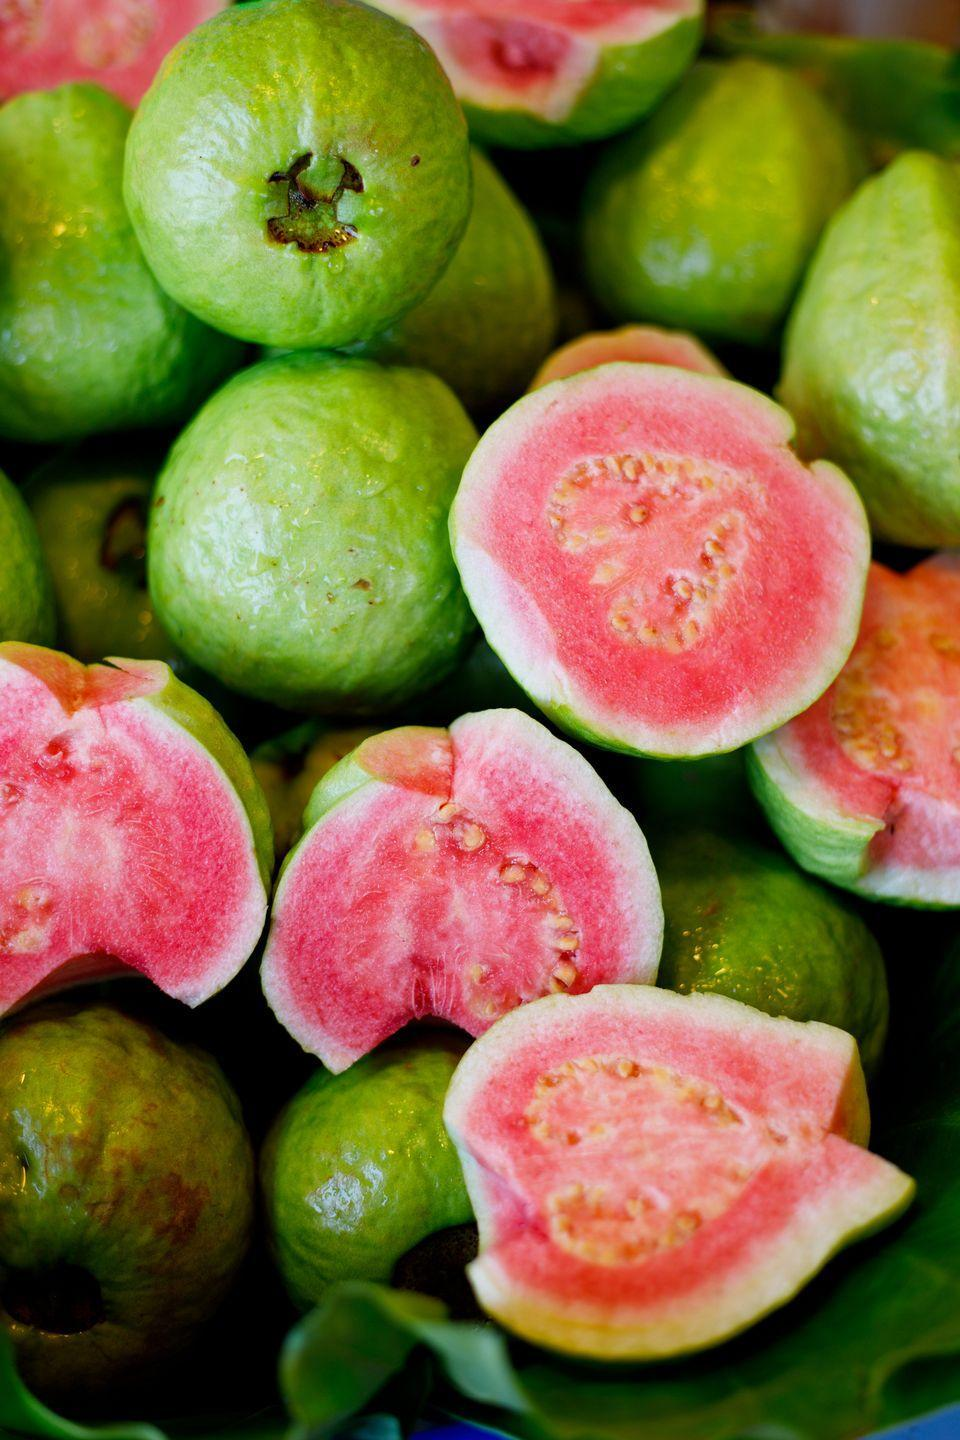 "<p>Give your immune system a boost with guava. They're rich in vitamin C, <a href=""https://www.goodhousekeeping.com/health/diet-nutrition/g2065/potassium-superfoods/"" rel=""nofollow noopener"" target=""_blank"" data-ylk=""slk:potassium"" class=""link rapid-noclick-resp"">potassium</a>, and fiber, and have a fair amount of folate. With a tropical tang, guavas can be used to make a tasty jam, or turned into a syrup or glaze to use in a host of recipes. </p>"